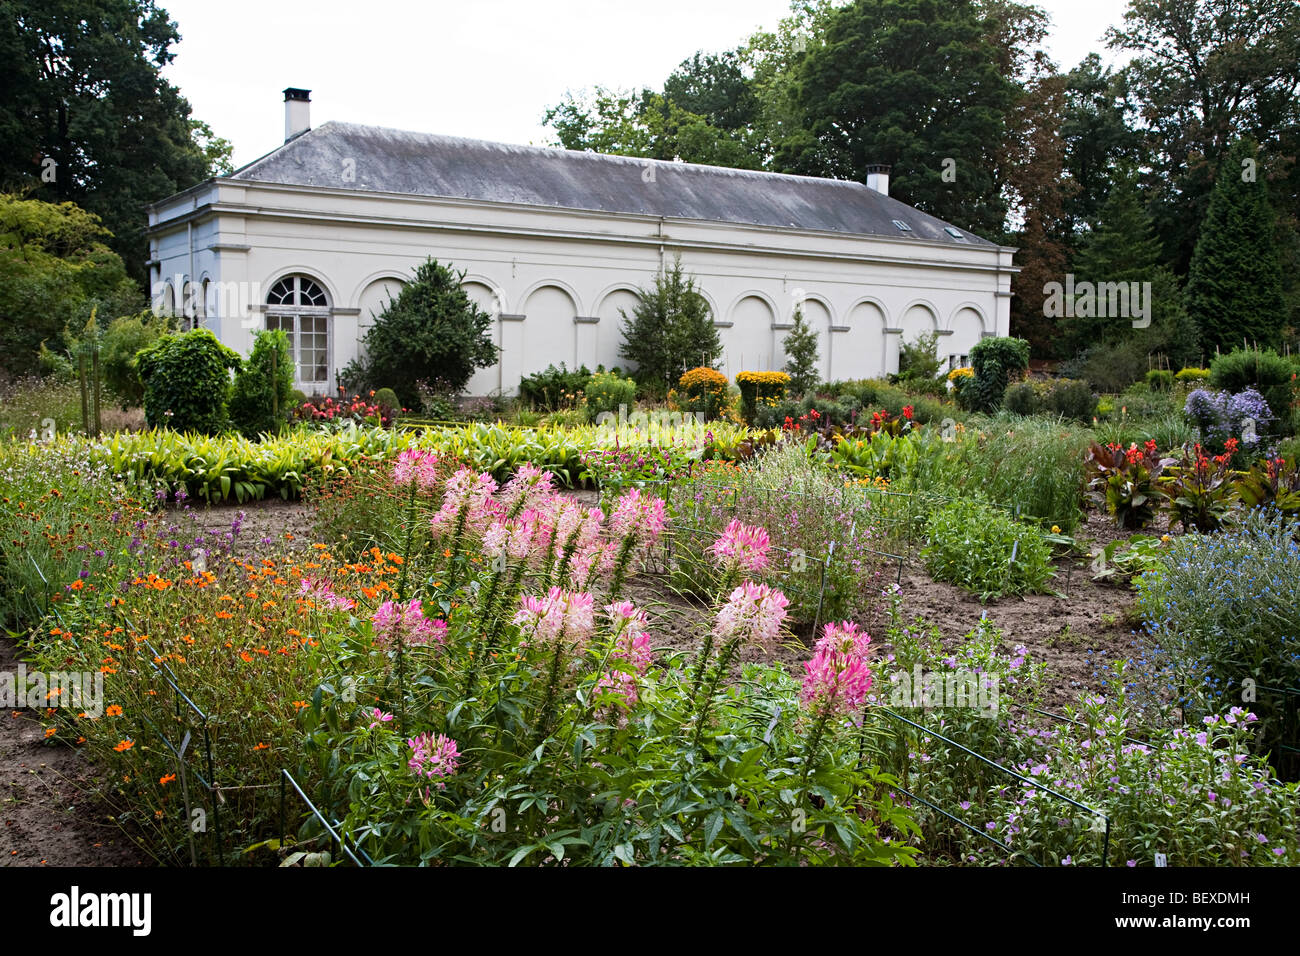 Outstanding Walled Gardens Stock Photos  Walled Gardens Stock Images  Alamy With Handsome Walled Garden And Orangery National Botanic Gardens Nationale Plantentuin  Meise Brussels Belgium  Stock Image With Archaic Jasmine Garden Menu Also Gardeners World Live Voucher Code In Addition Solar Powered Garden Lighting And Garden Centre Gifts As Well As Woodlands Garden Centre Kent Additionally Jacksons Garden Centre From Alamycom With   Handsome Walled Gardens Stock Photos  Walled Gardens Stock Images  Alamy With Archaic Walled Garden And Orangery National Botanic Gardens Nationale Plantentuin  Meise Brussels Belgium  Stock Image And Outstanding Jasmine Garden Menu Also Gardeners World Live Voucher Code In Addition Solar Powered Garden Lighting From Alamycom